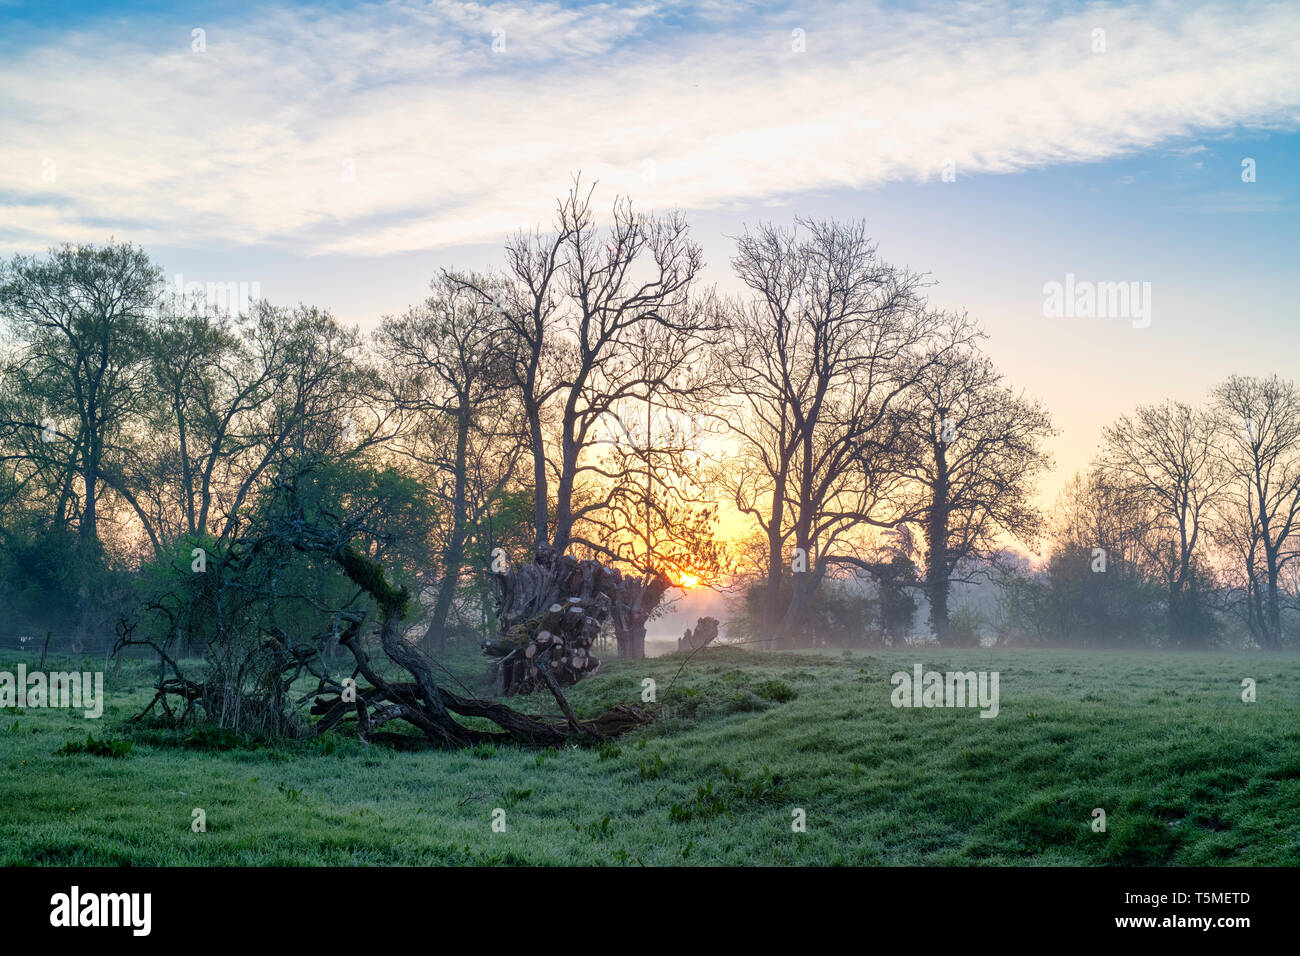 Oxfordshire countryside in the spring at sunrise. Shipton on cherwell, Oxfordshire, England Stock Photo